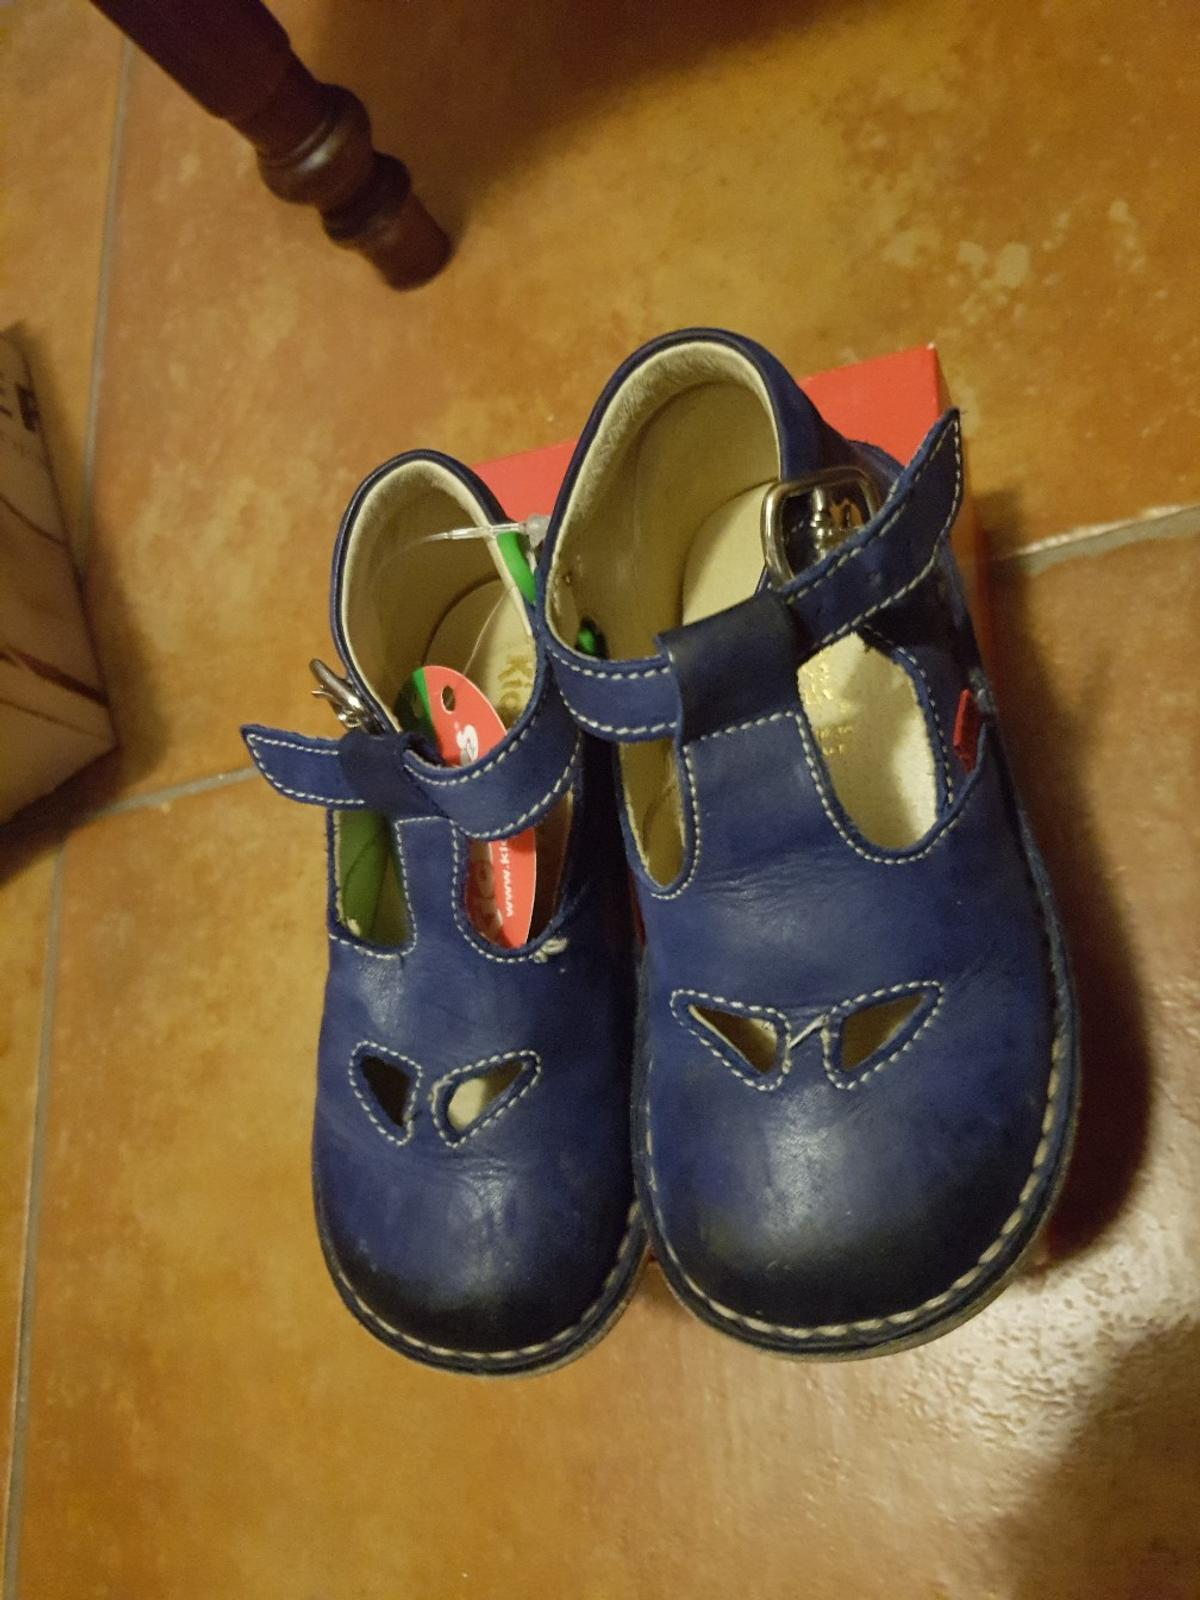 separation shoes 2d768 1e661 Scarpe kickers bambino 24 in 01036 Monterosi for €13.00 for ...